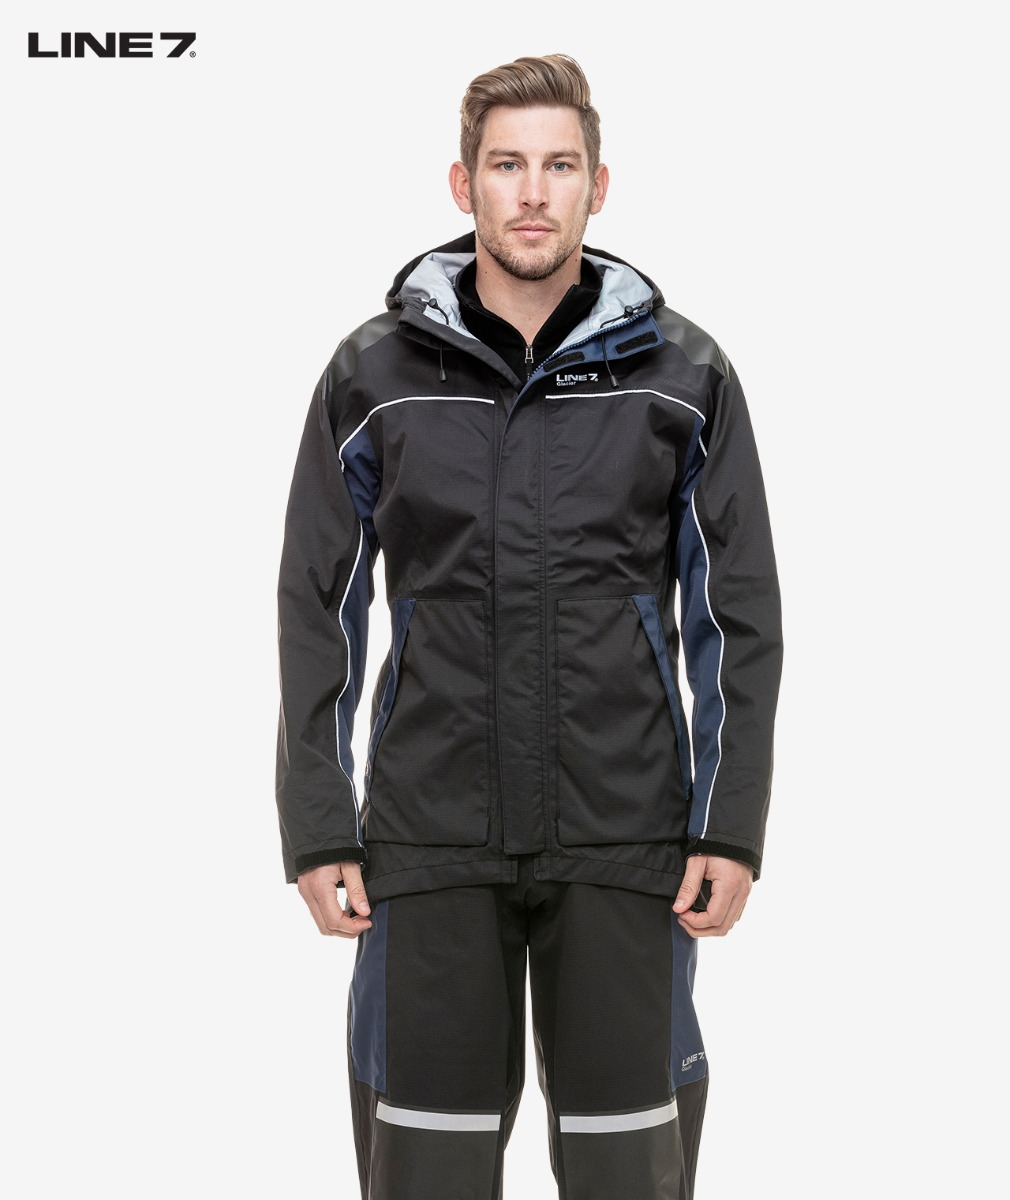 Line 7 Men's Glacier Waterproof Jacket in Black